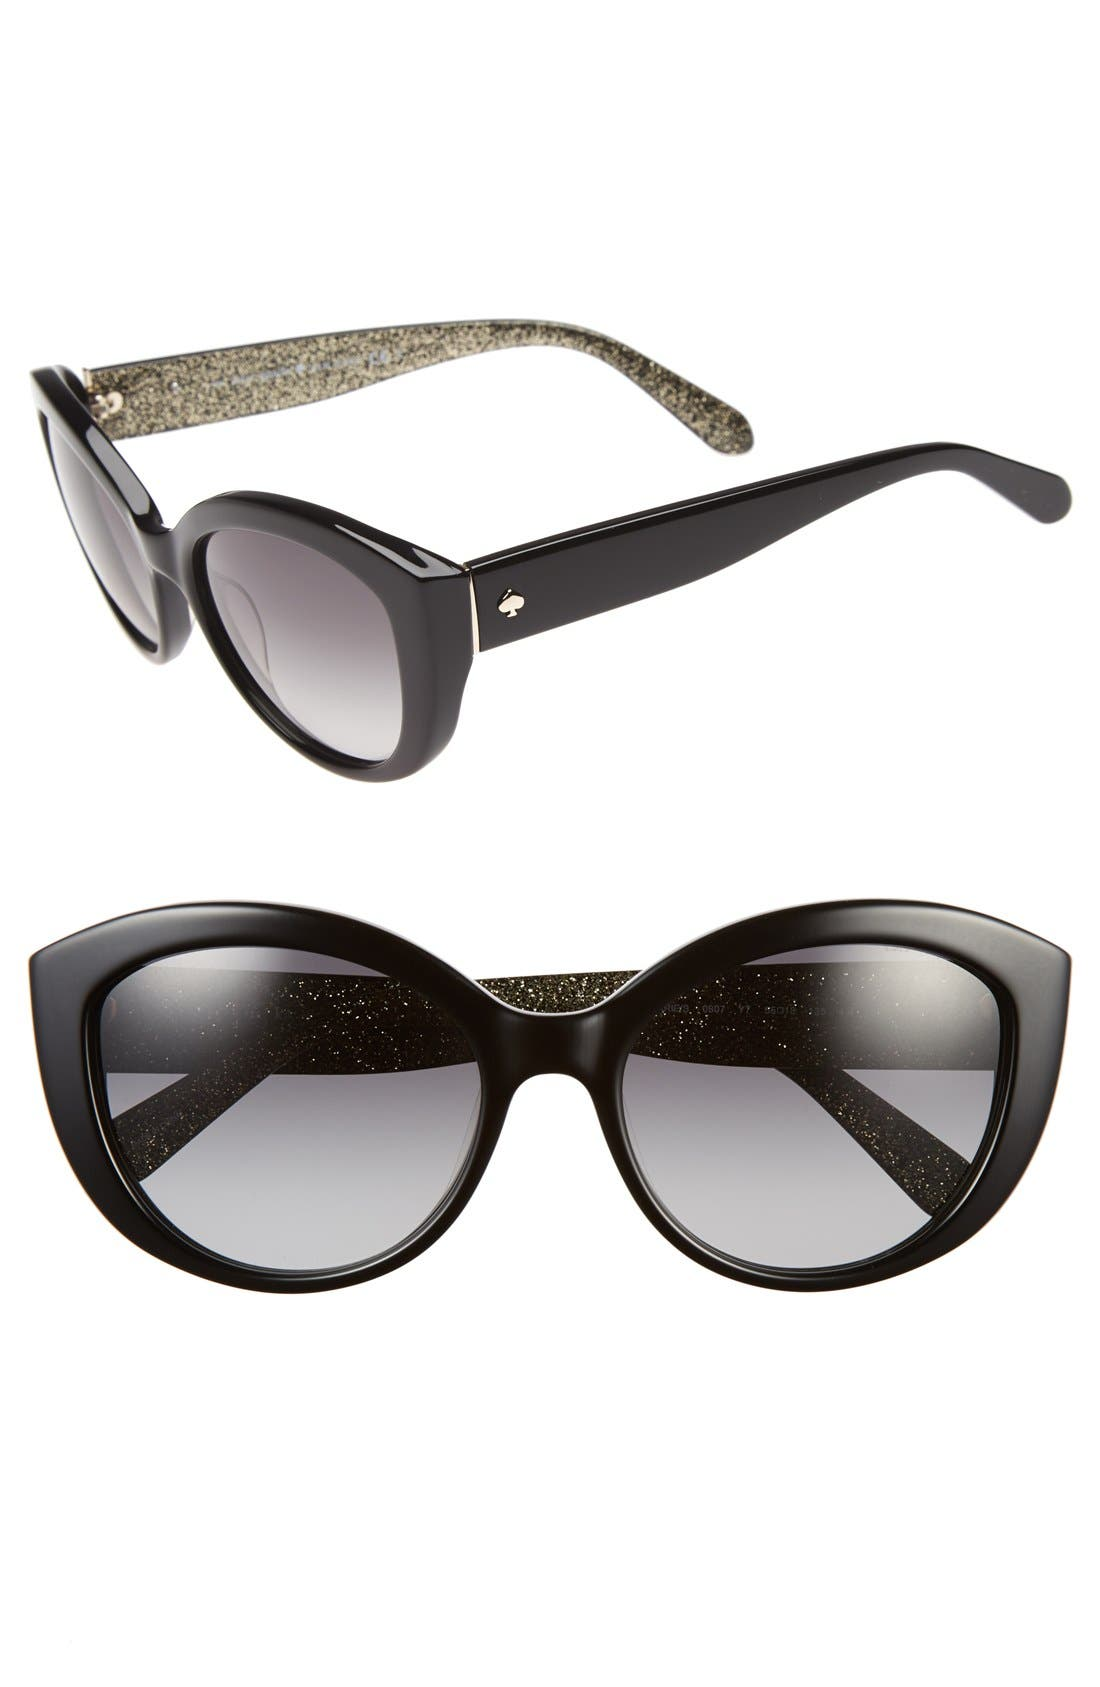 Alternate Image 1 Selected - kate spade new york 'sherrie' 55mm cat eye sunglasses